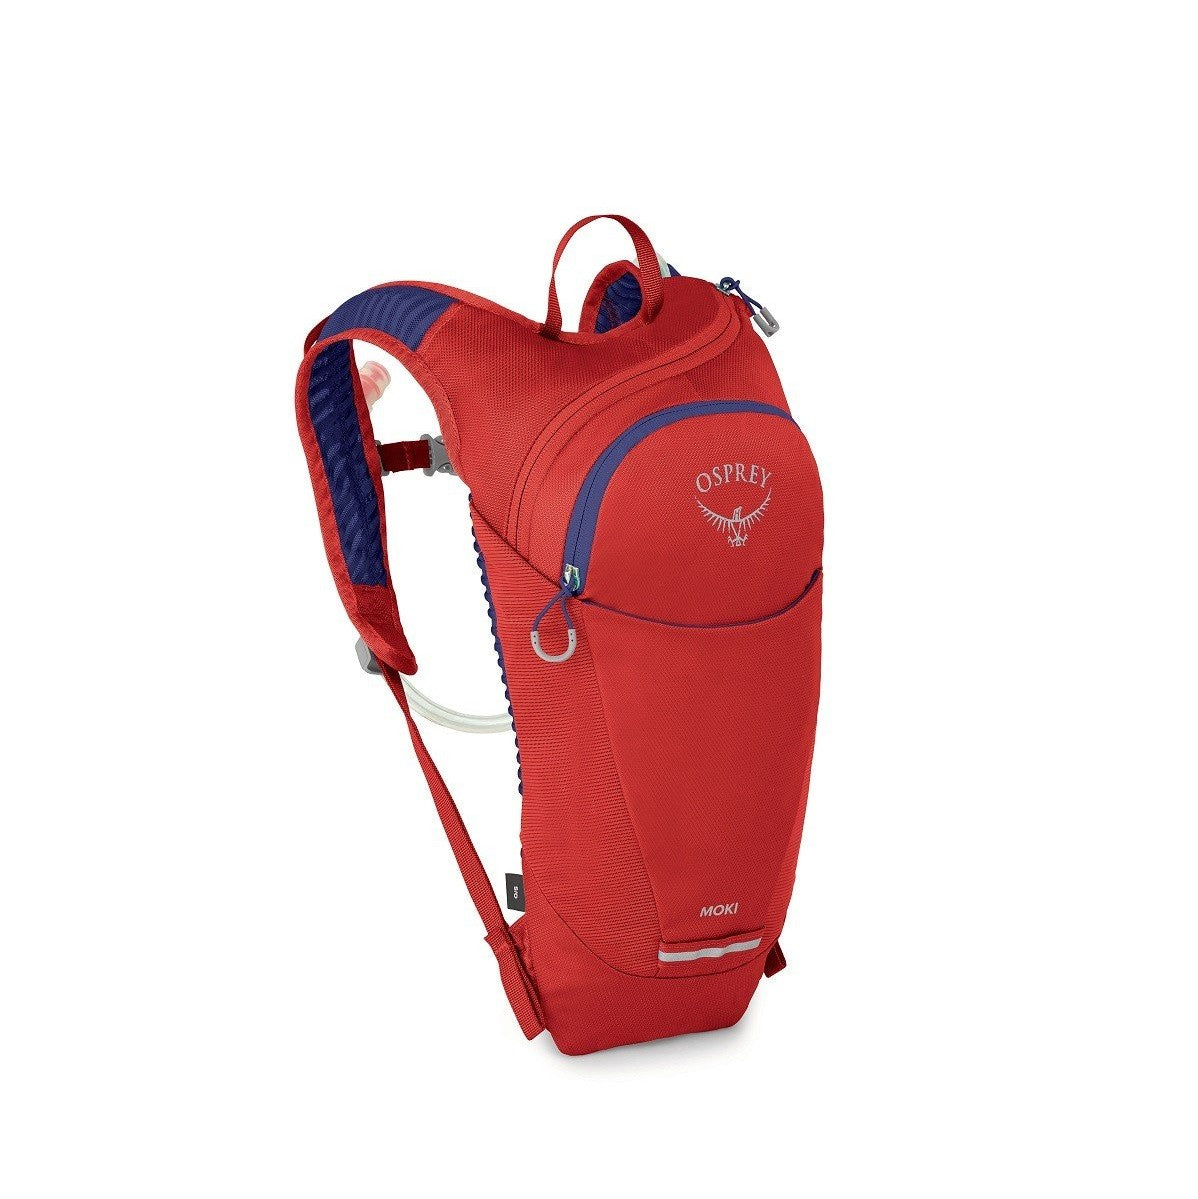 Osprey Moki Hydration Pack